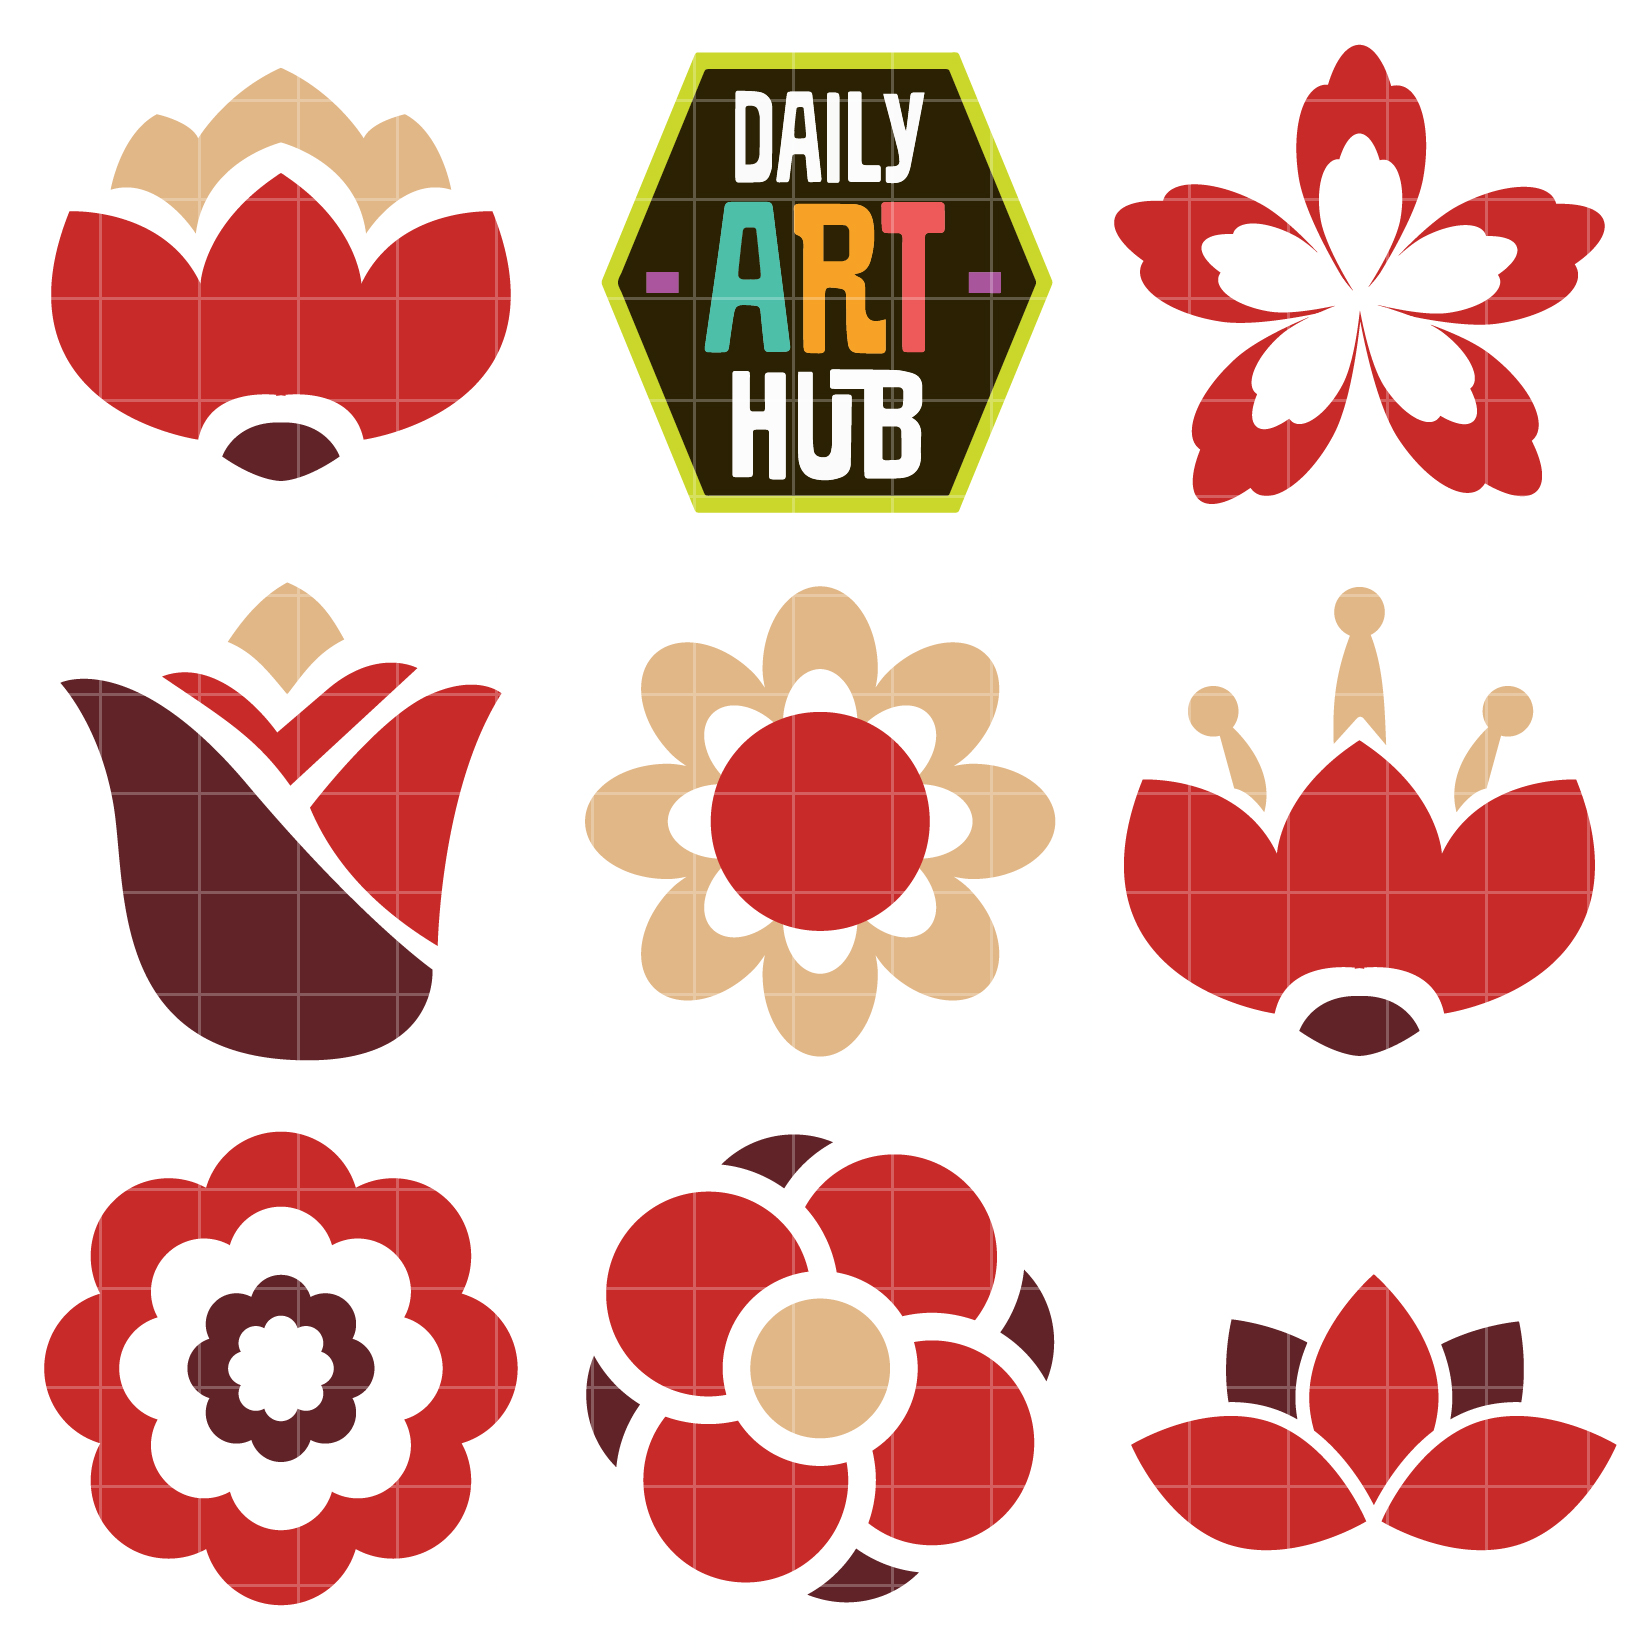 1650x1650 Simple Flowers Clip Art Set Daily Art Hub Free Clip Art Everyday